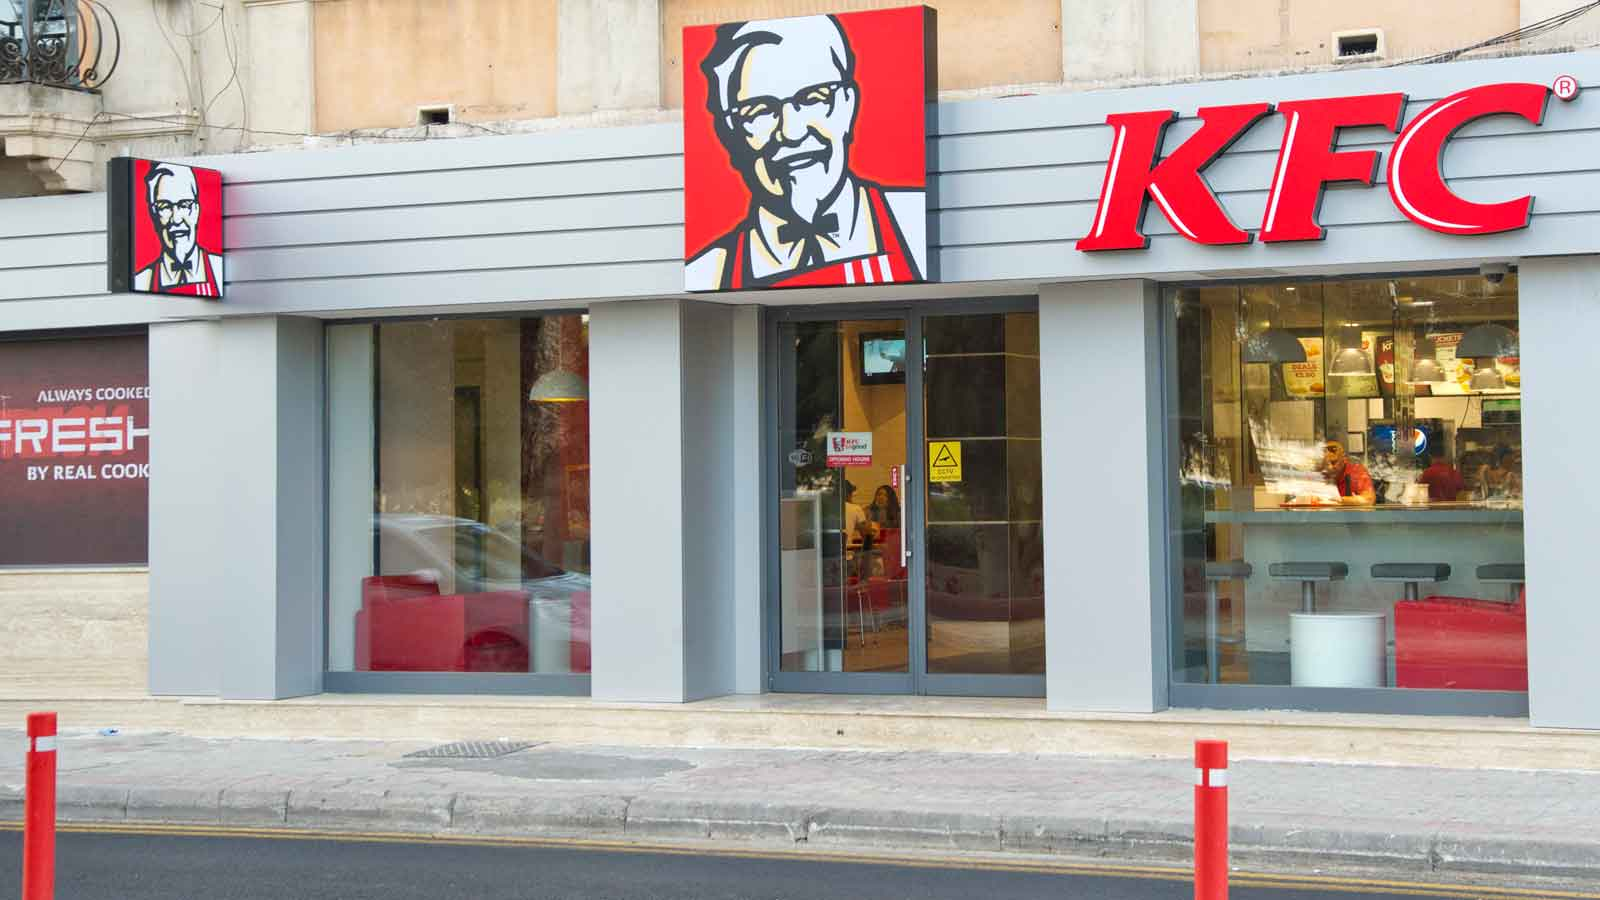 KFC Gzira reopens with a fresh new look